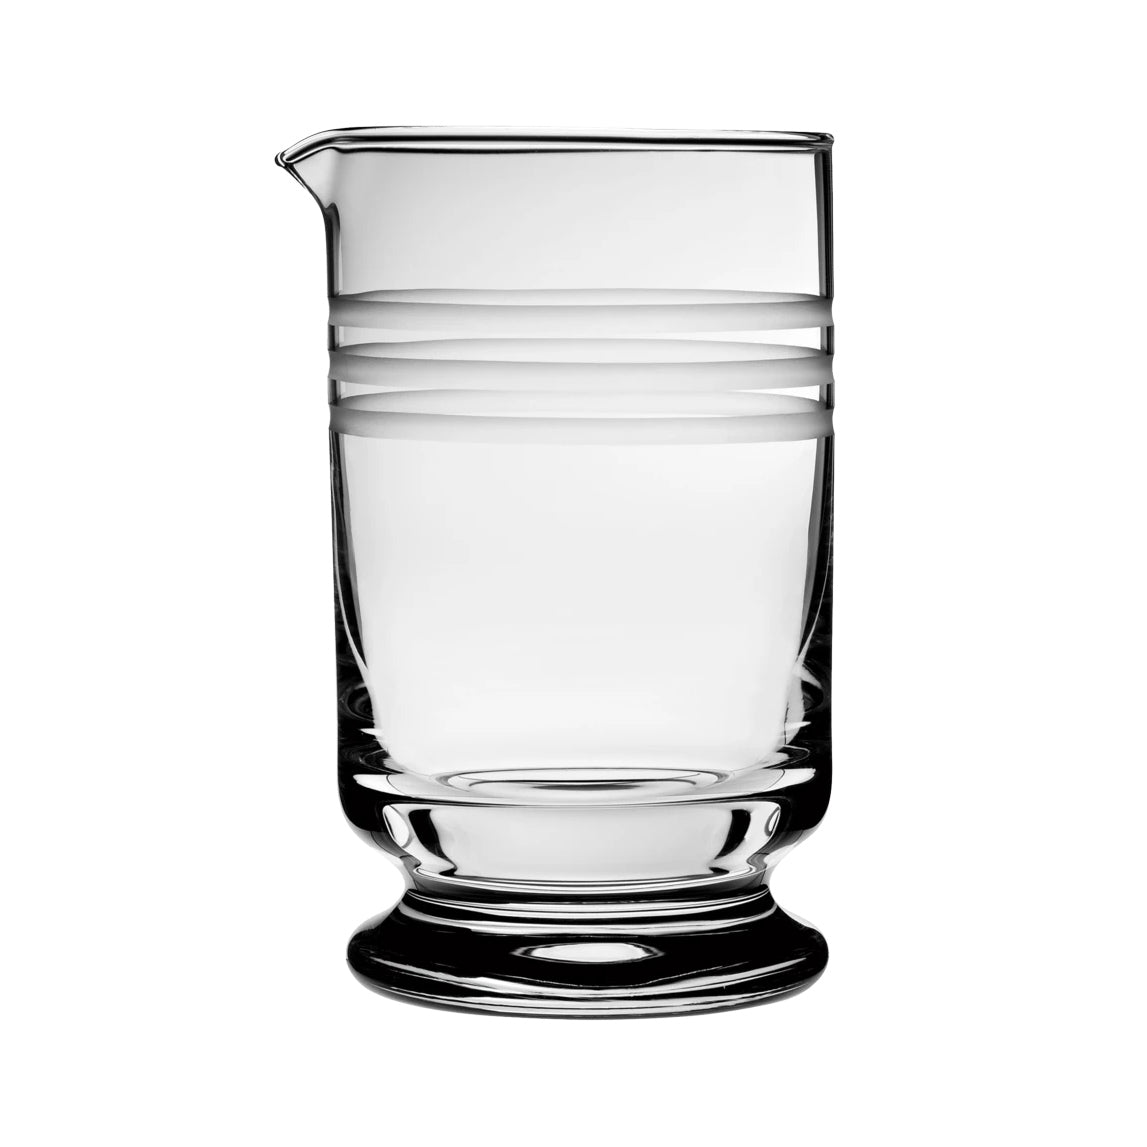 Calabrese Etched Mixing Glass